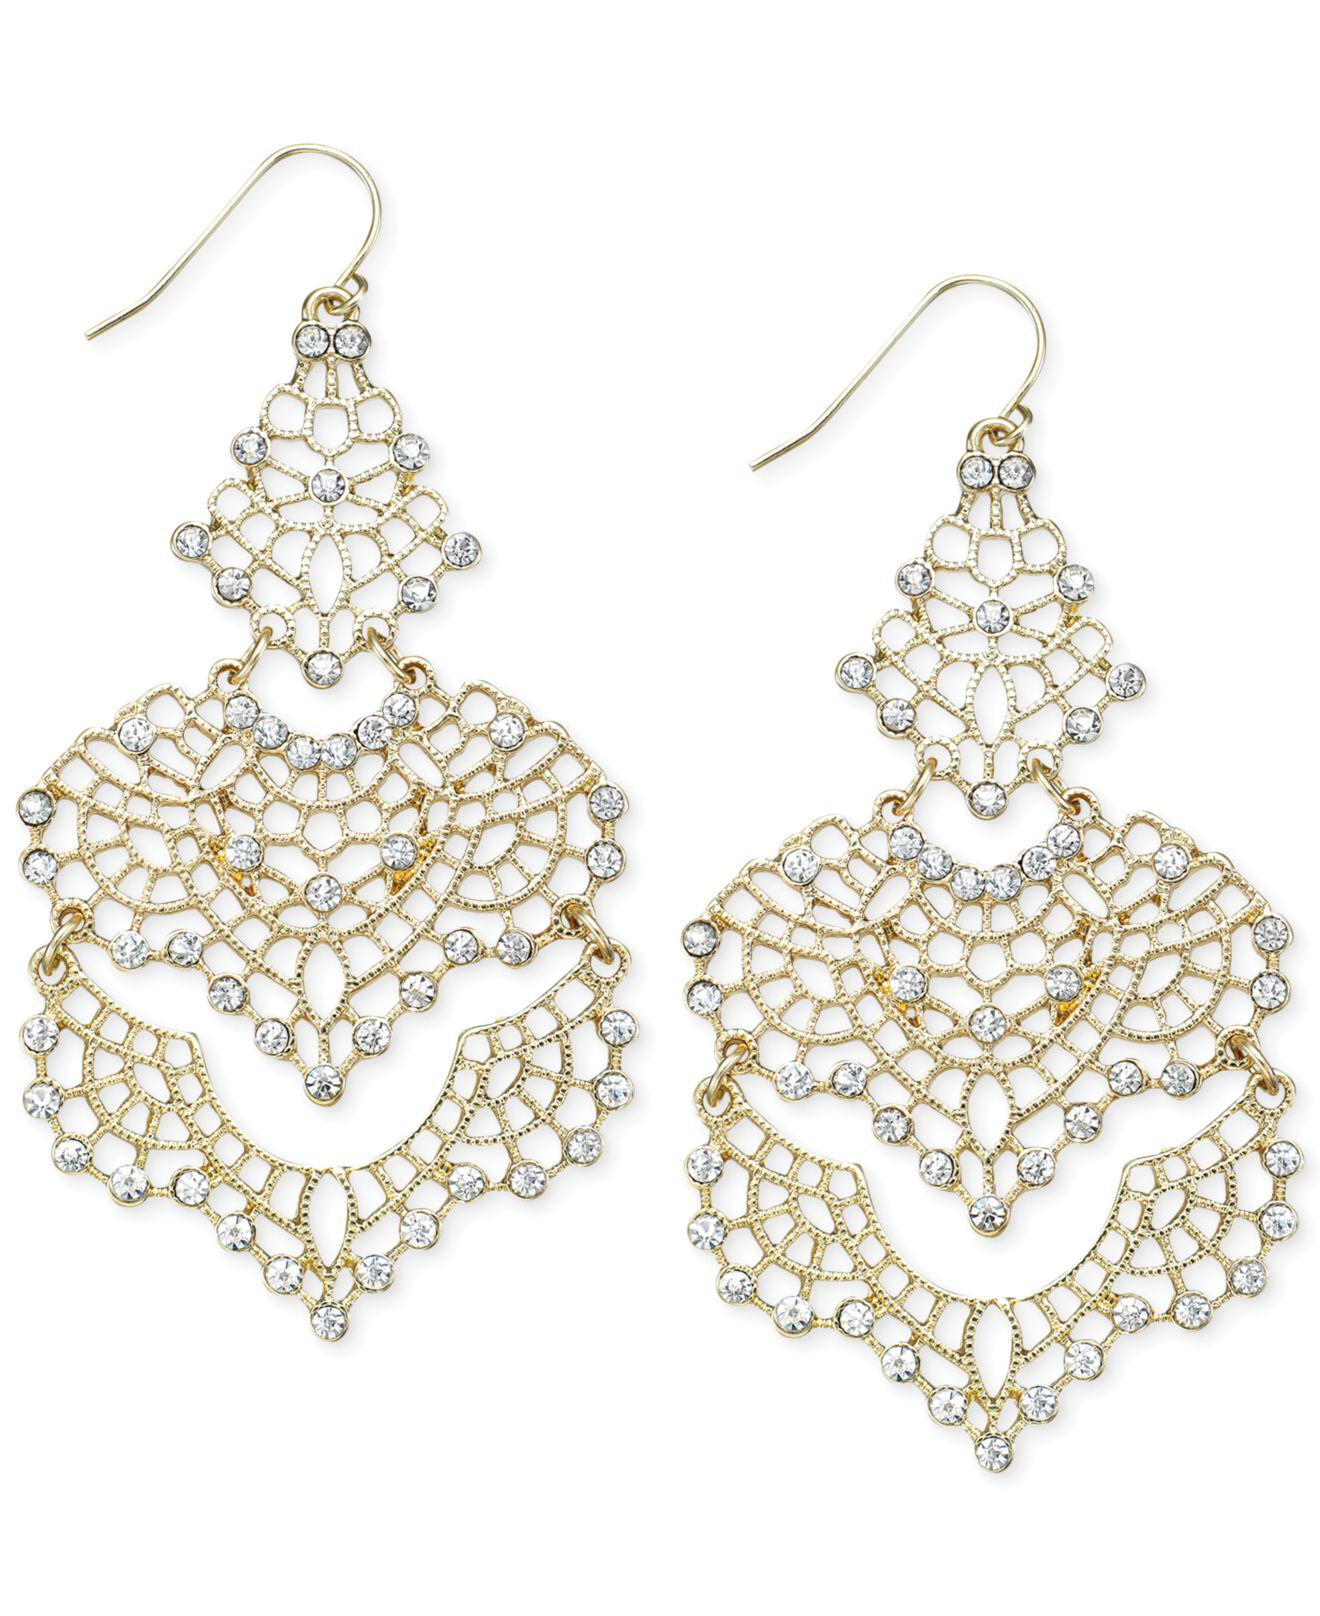 7534e3e9b Long-Touch to Zoom. INC International Concepts - Metallic I.n.c. Crystal  Lace Chandelier Earrings - Lyst